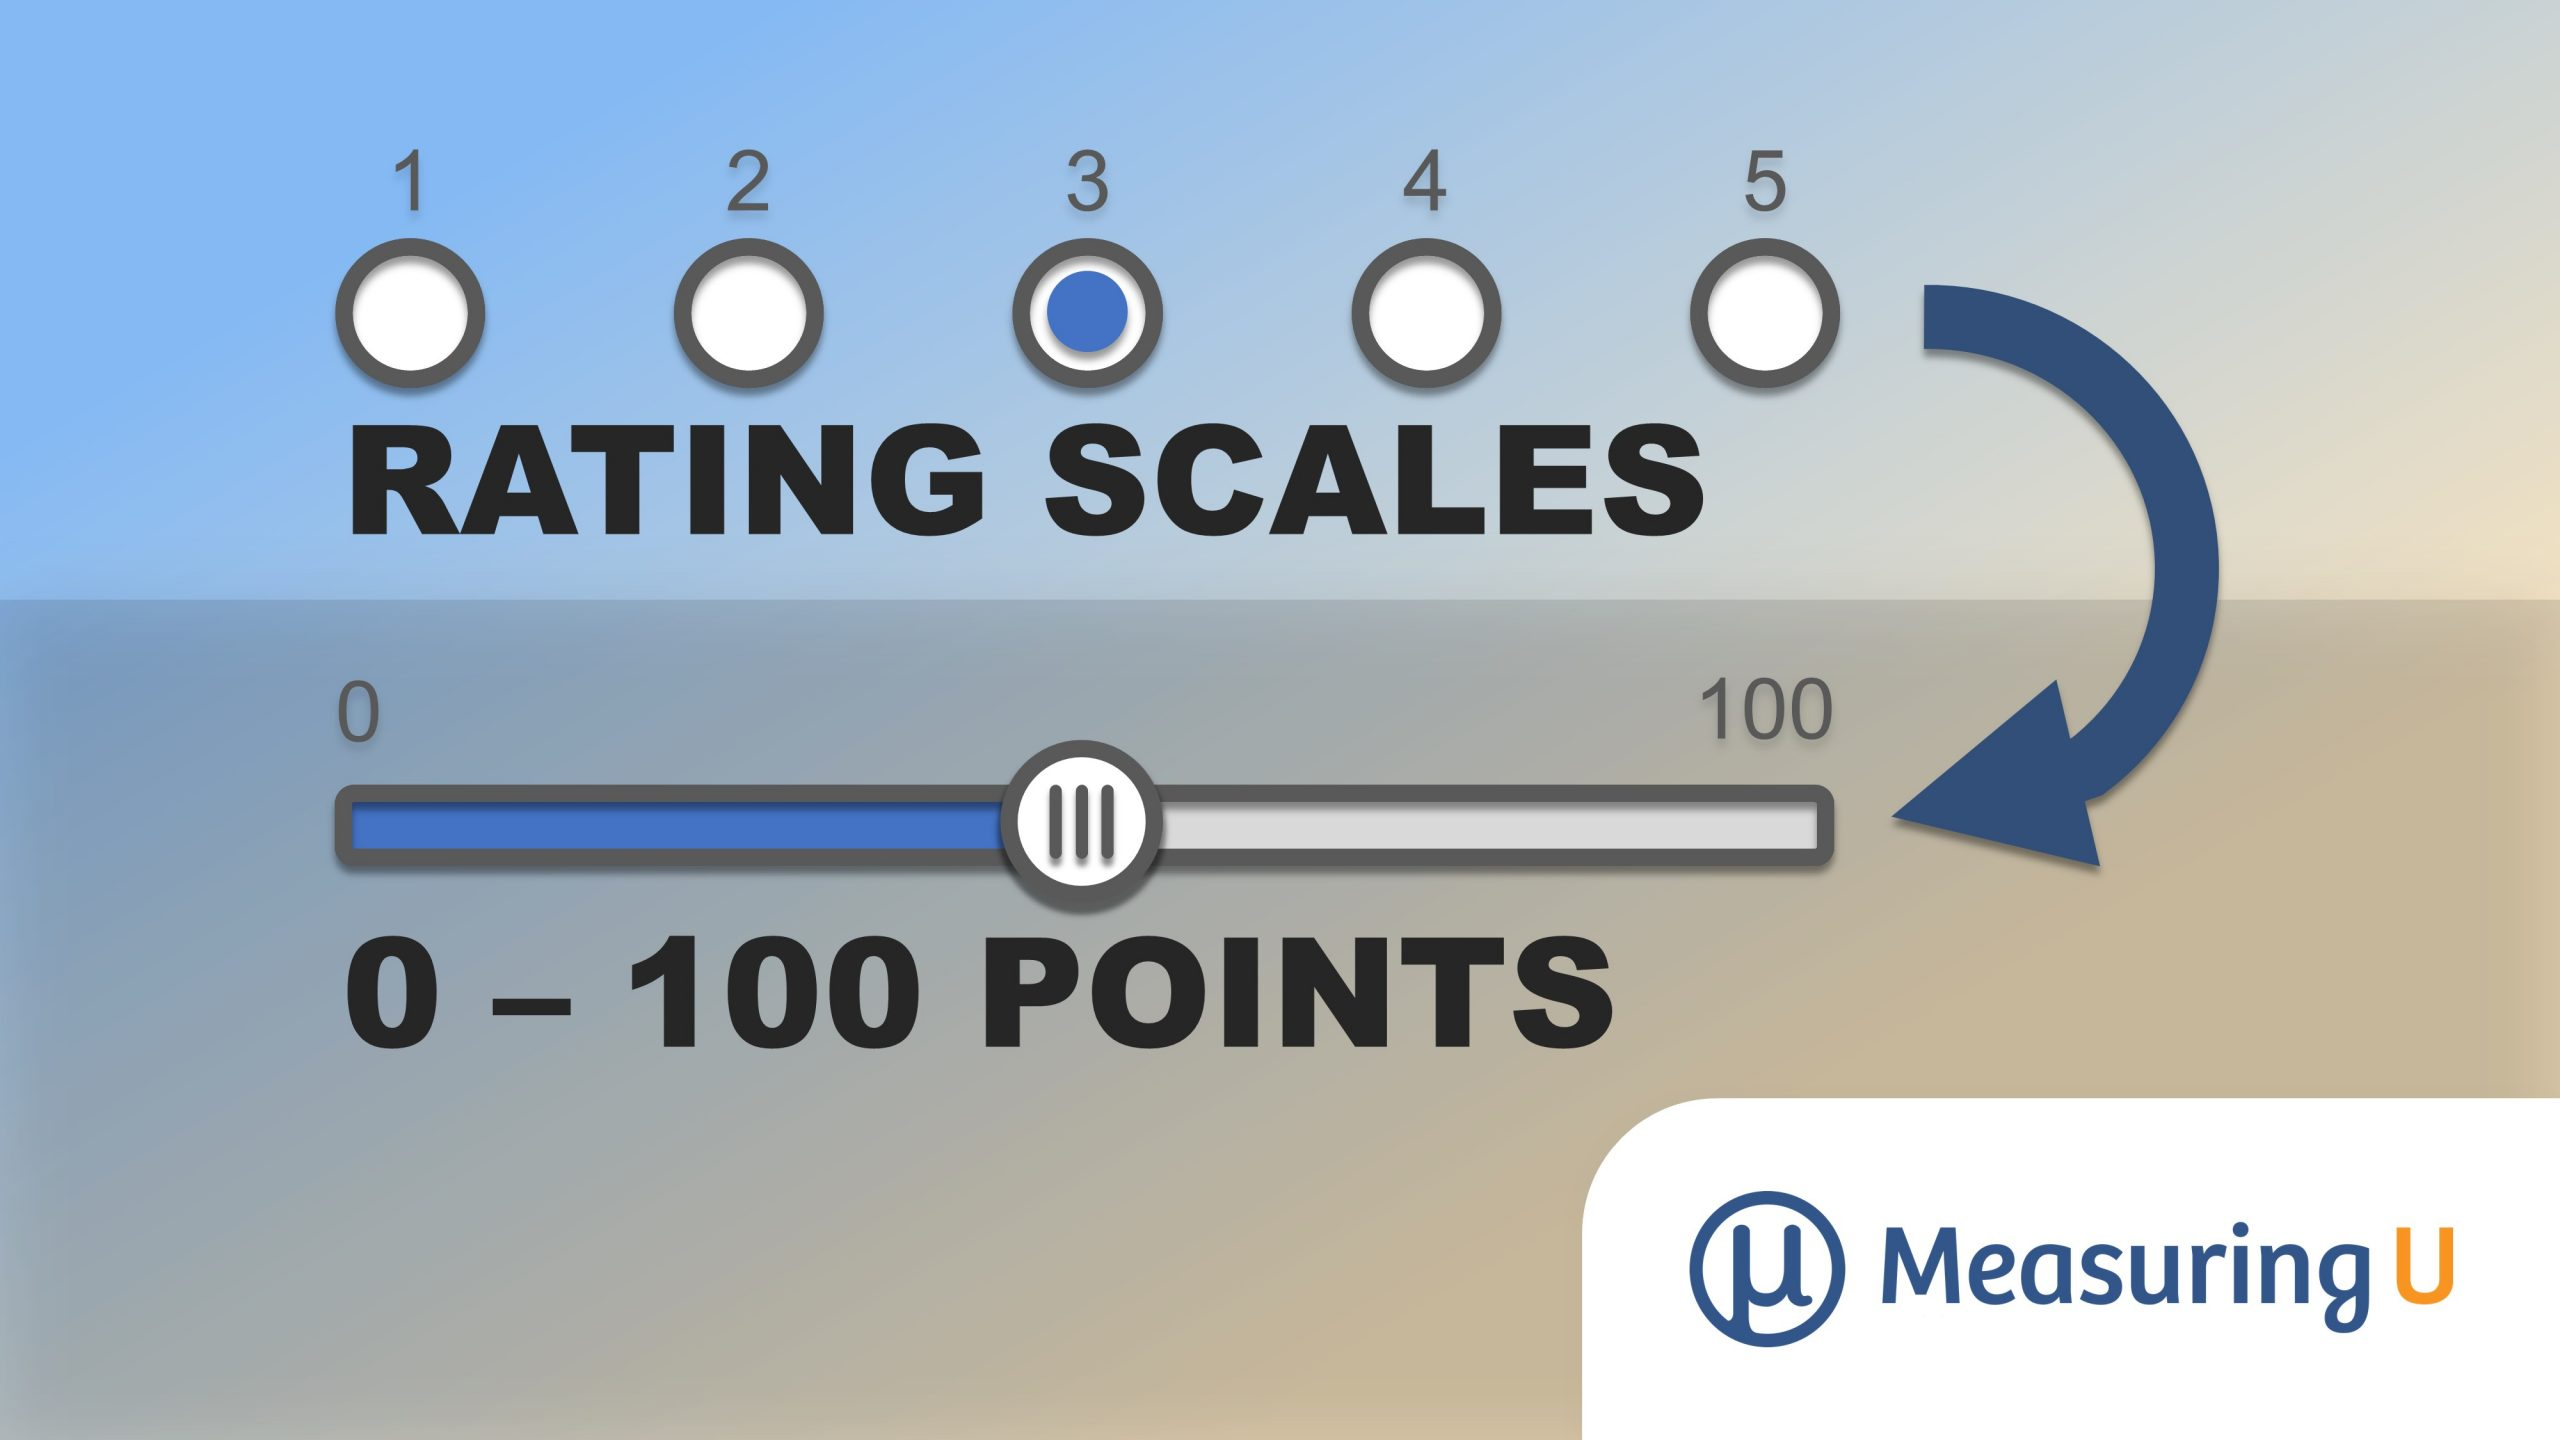 Converting Rating Scales to 0–100 Points